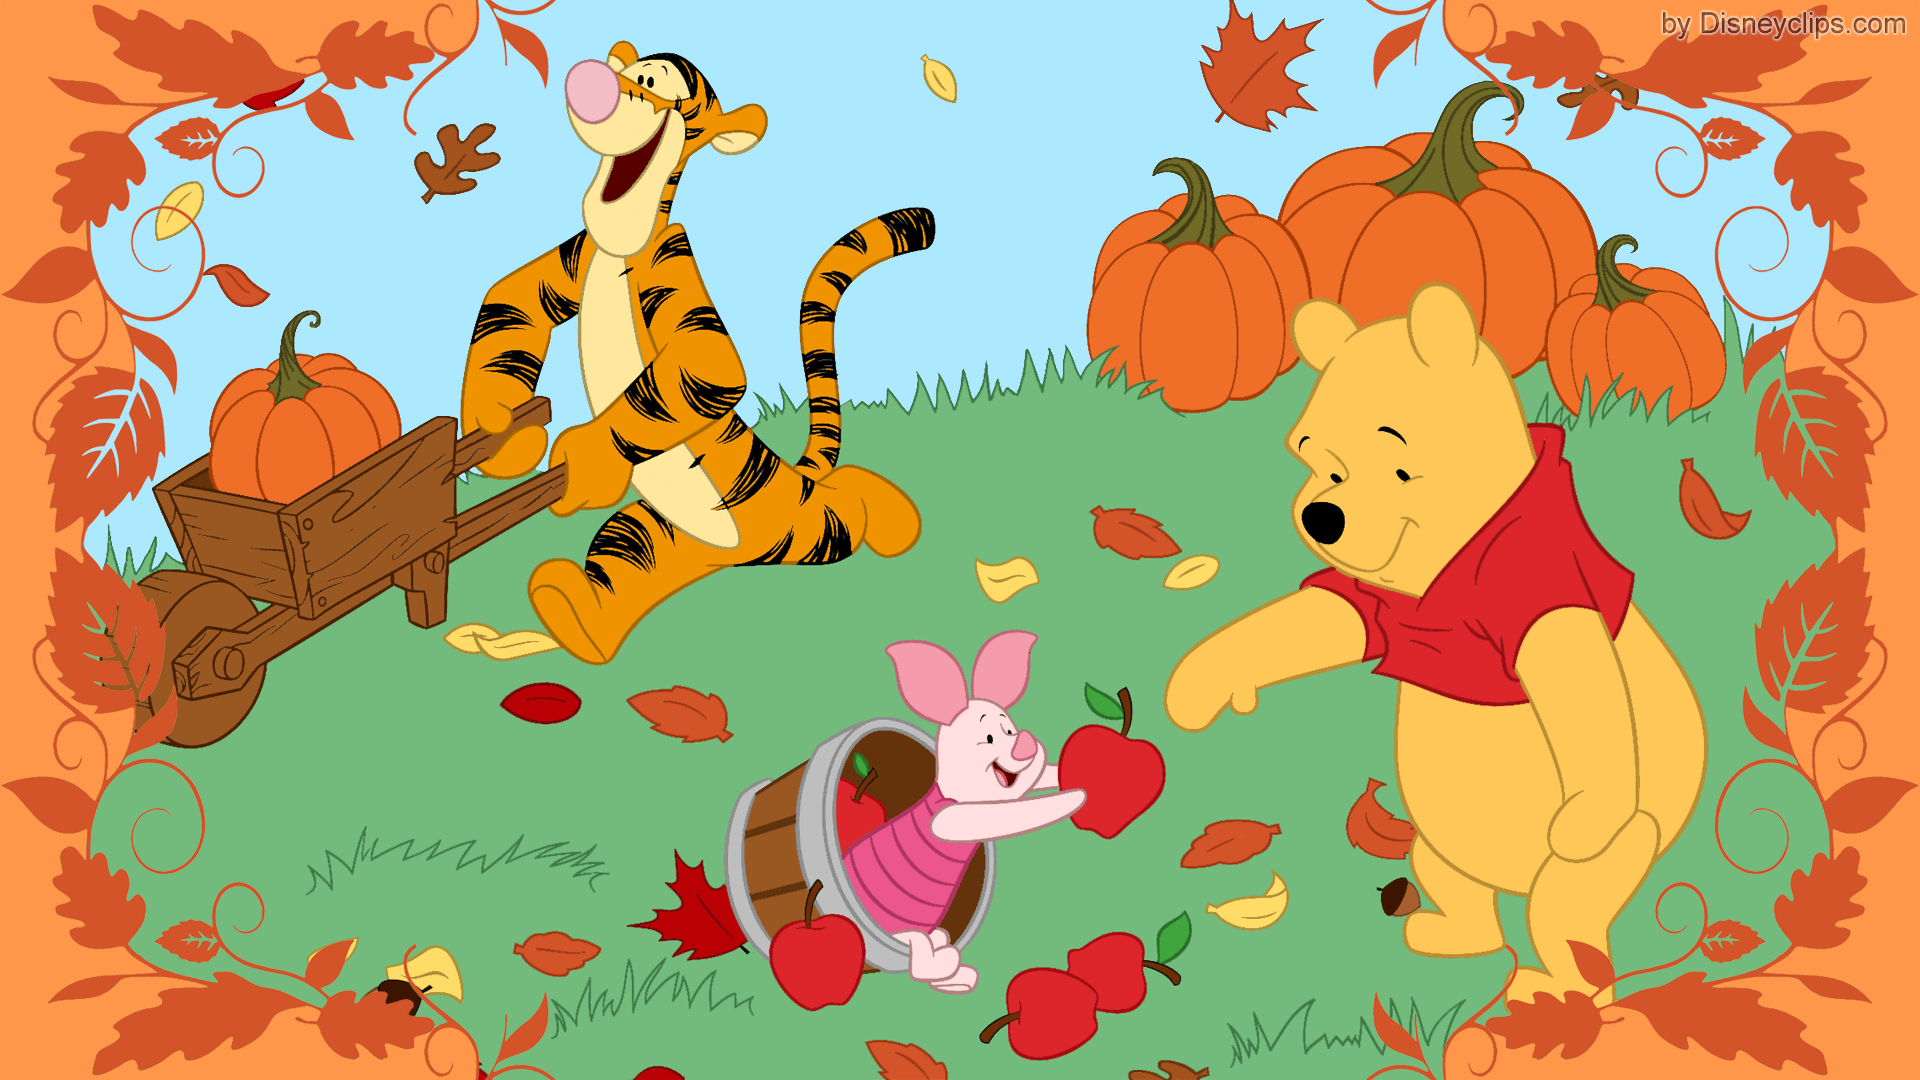 Winnie The Pooh And Friends Wallpaper Disneyclips Com